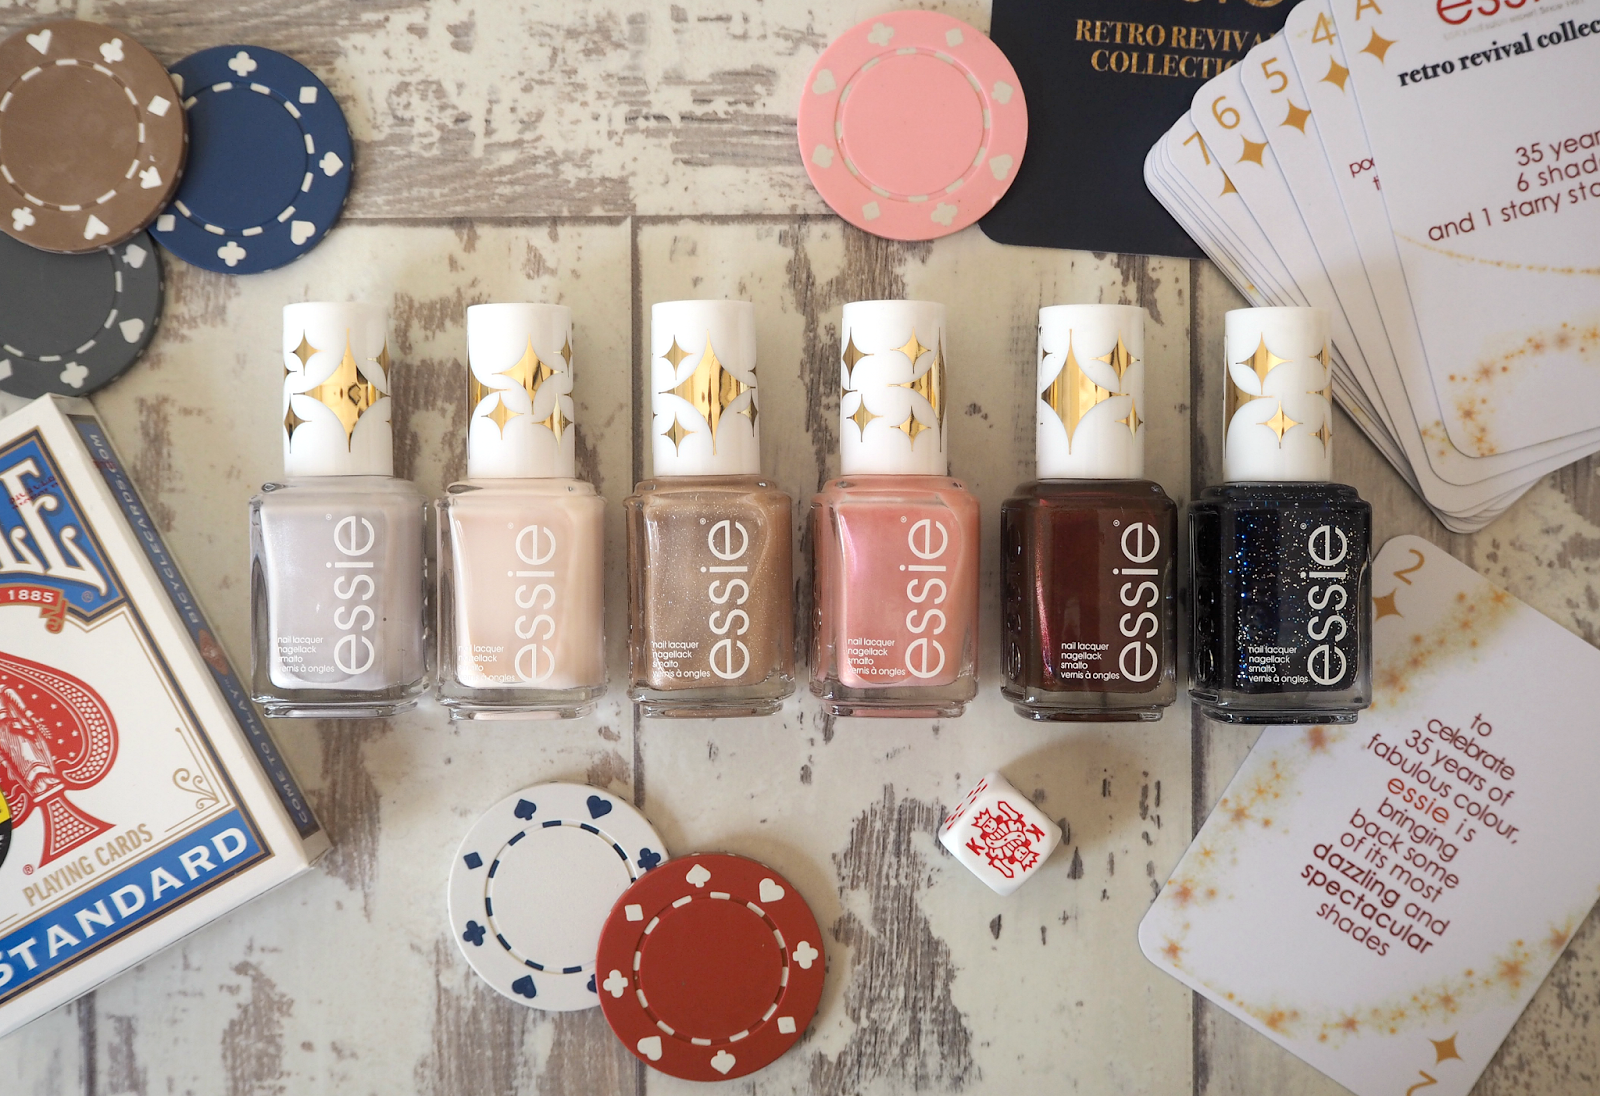 The 'Magical' Essie Retro Revival Collection: celebrating 35 years of nail polish